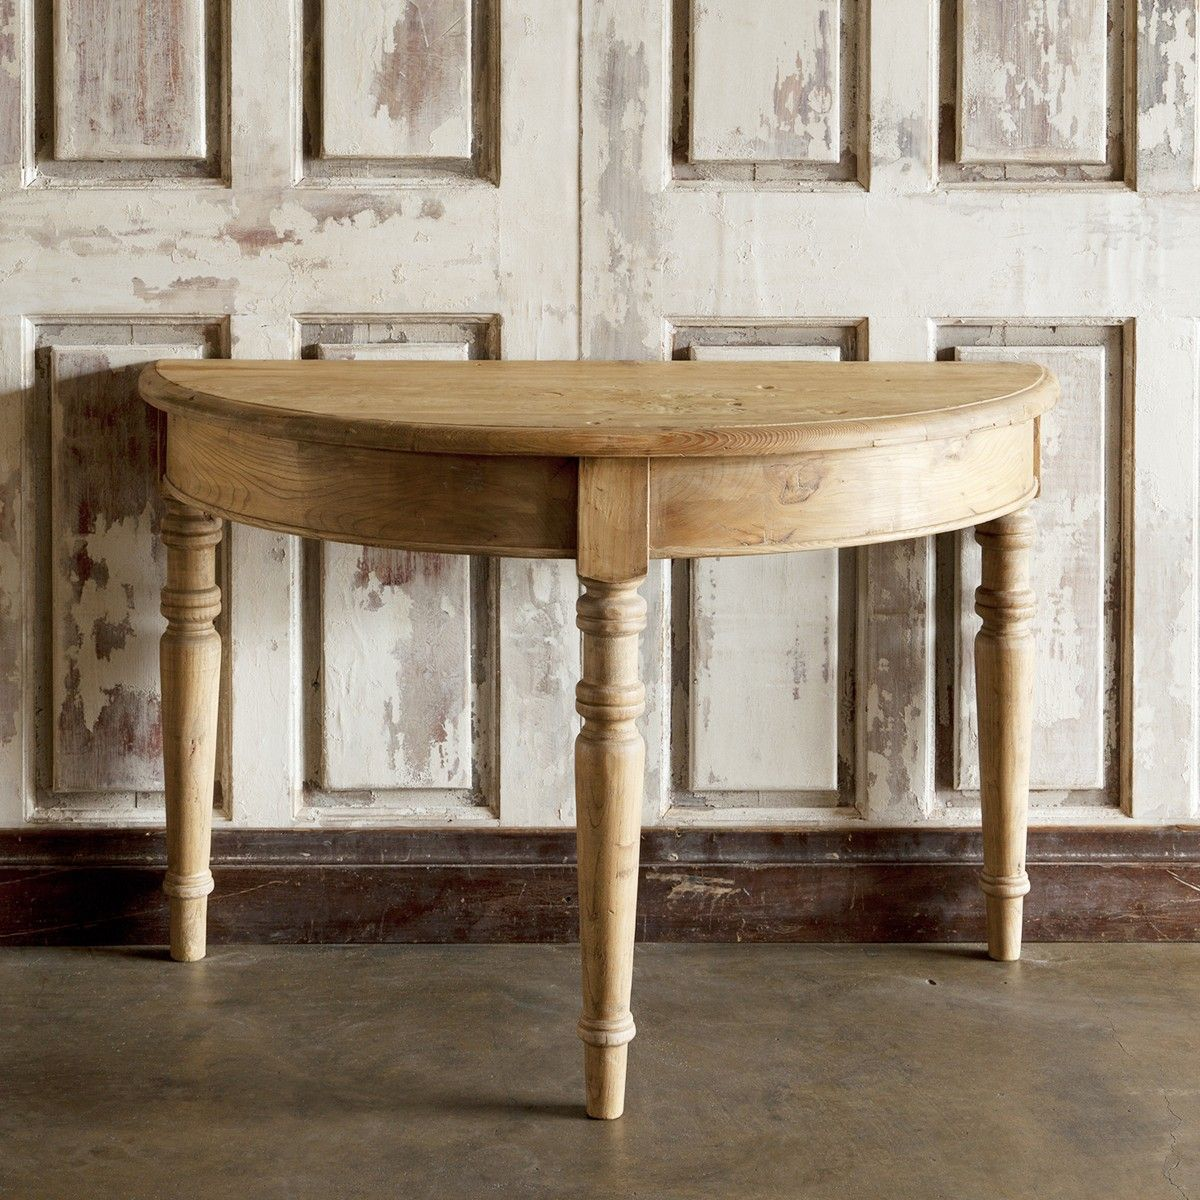 In a lovely half moon shape our demi lune console table is in a lovely half moon shape our demi lune console table is stylish and functional in a warm rustic wood finish the country style console table is framed geotapseo Gallery